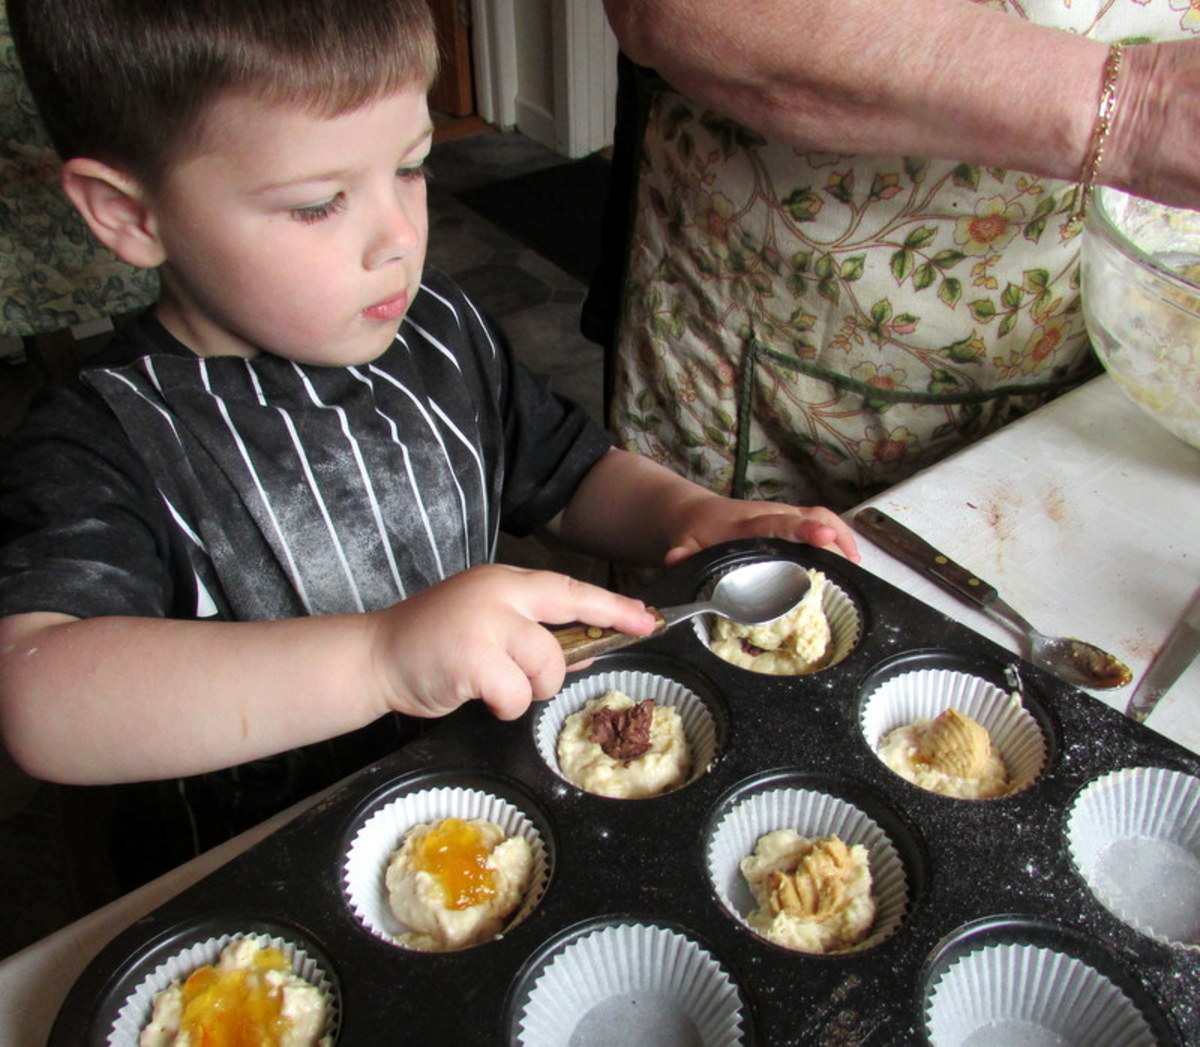 Adding optional extra flavours to the homemade muffins.